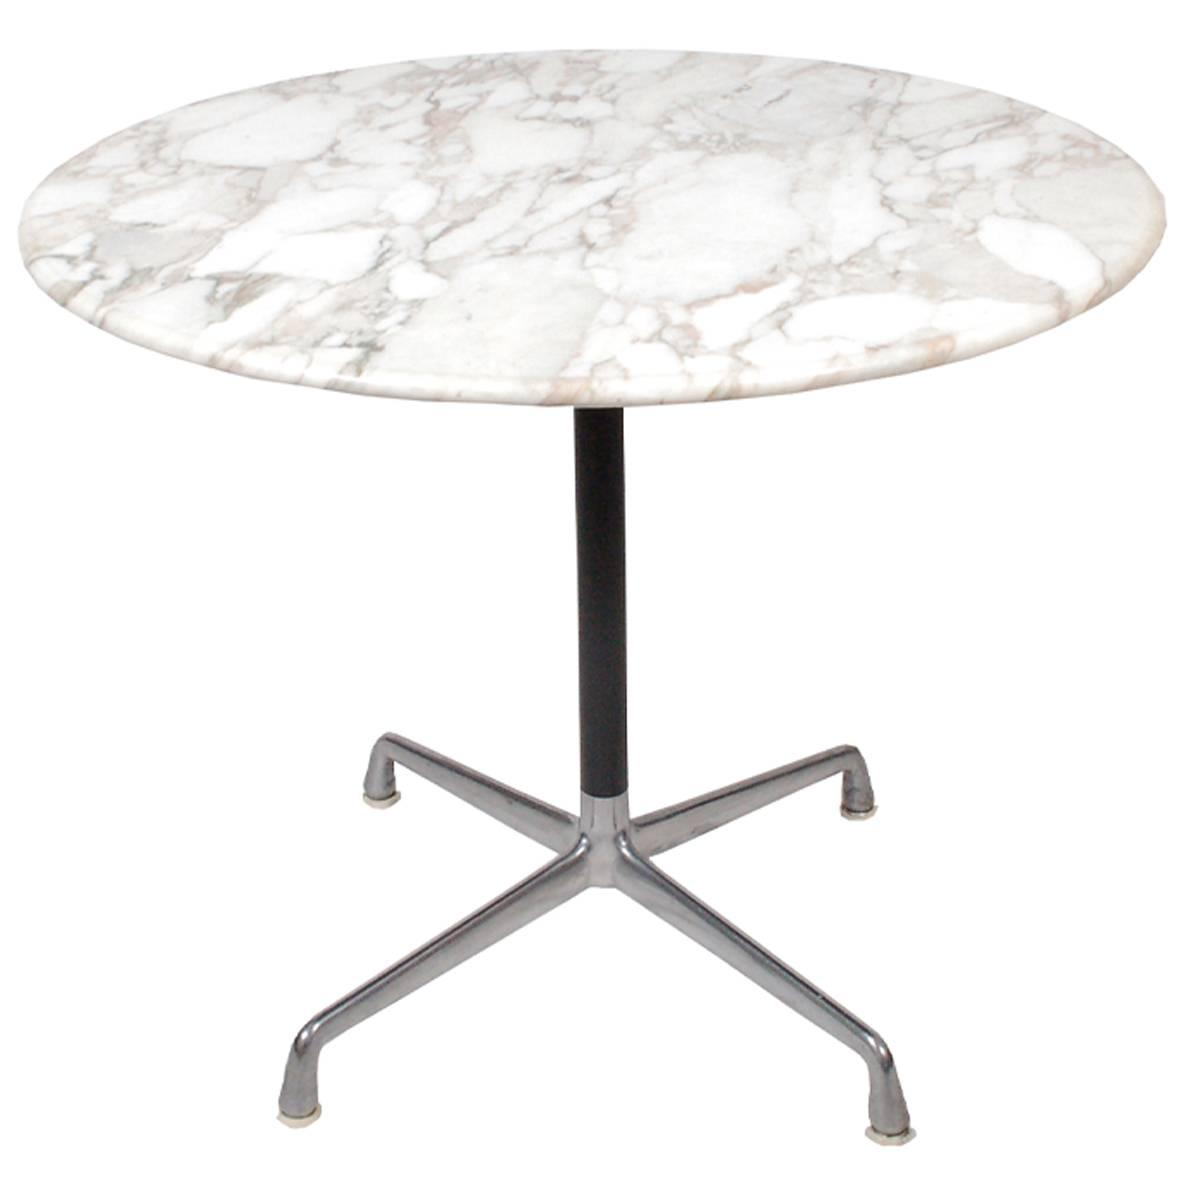 Charles Eames Aluminium Group Dining Table At Stdibs - Eames marble table